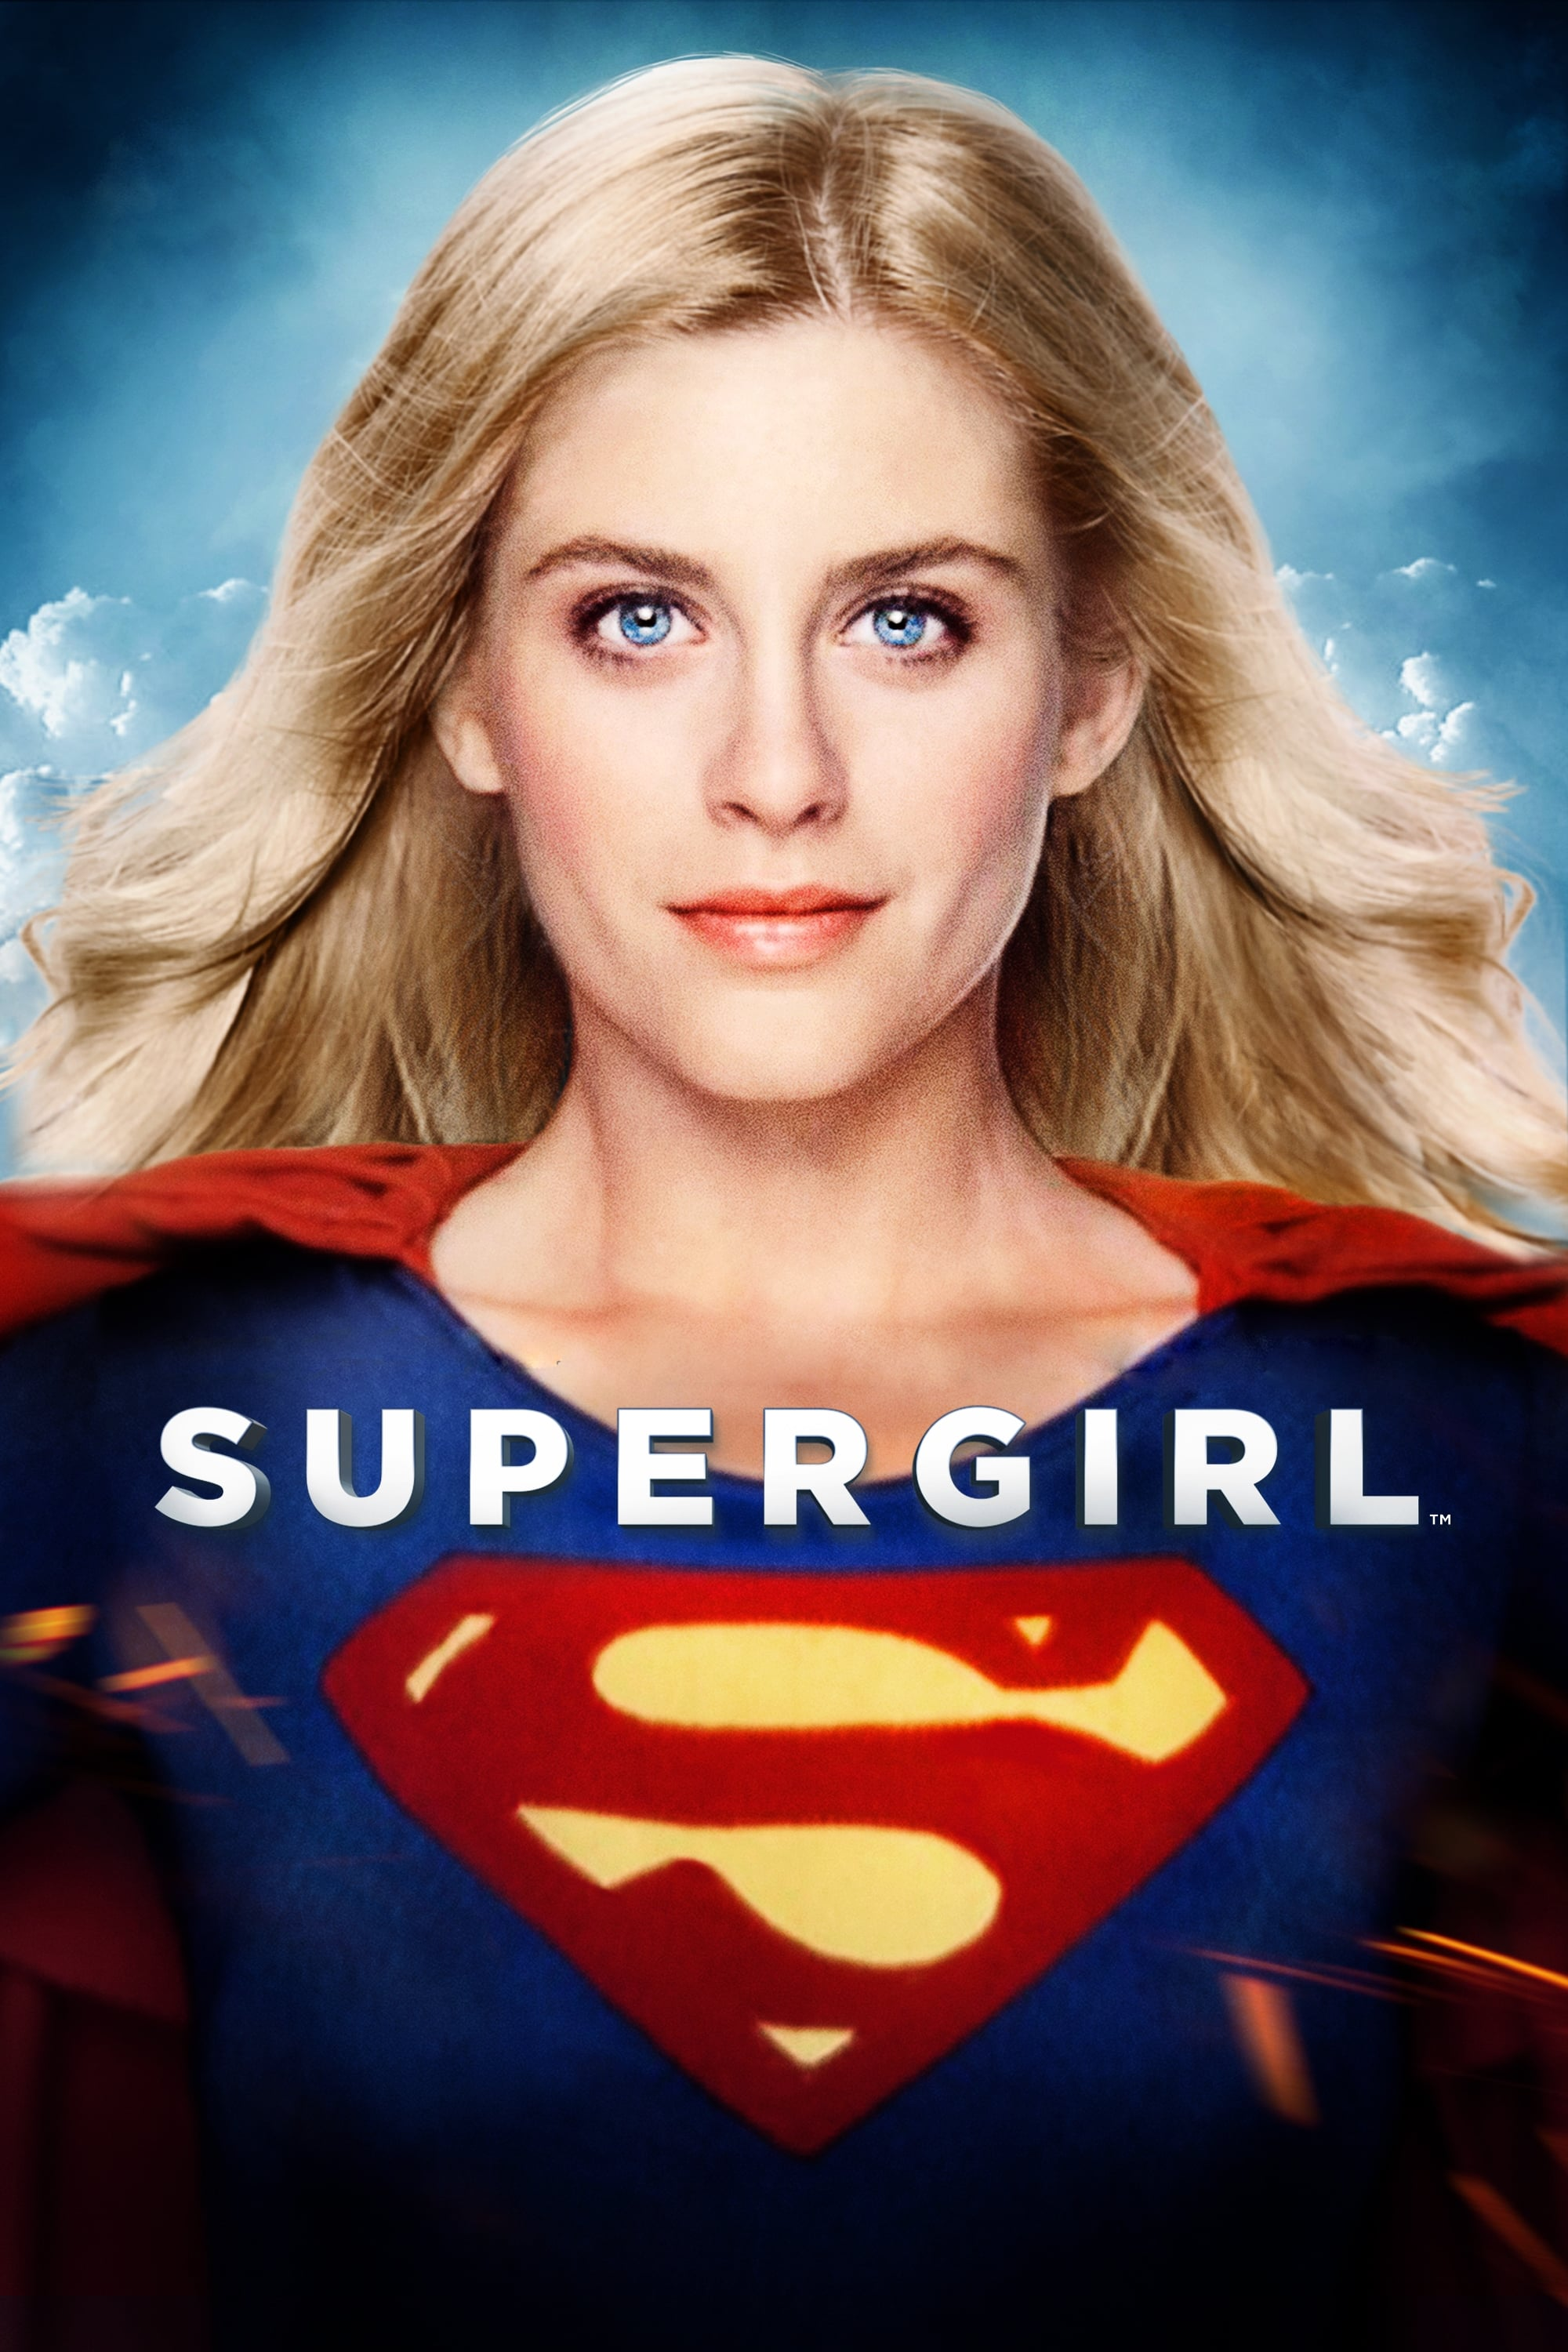 supergirl - 1984 movie - jeannot szwarc